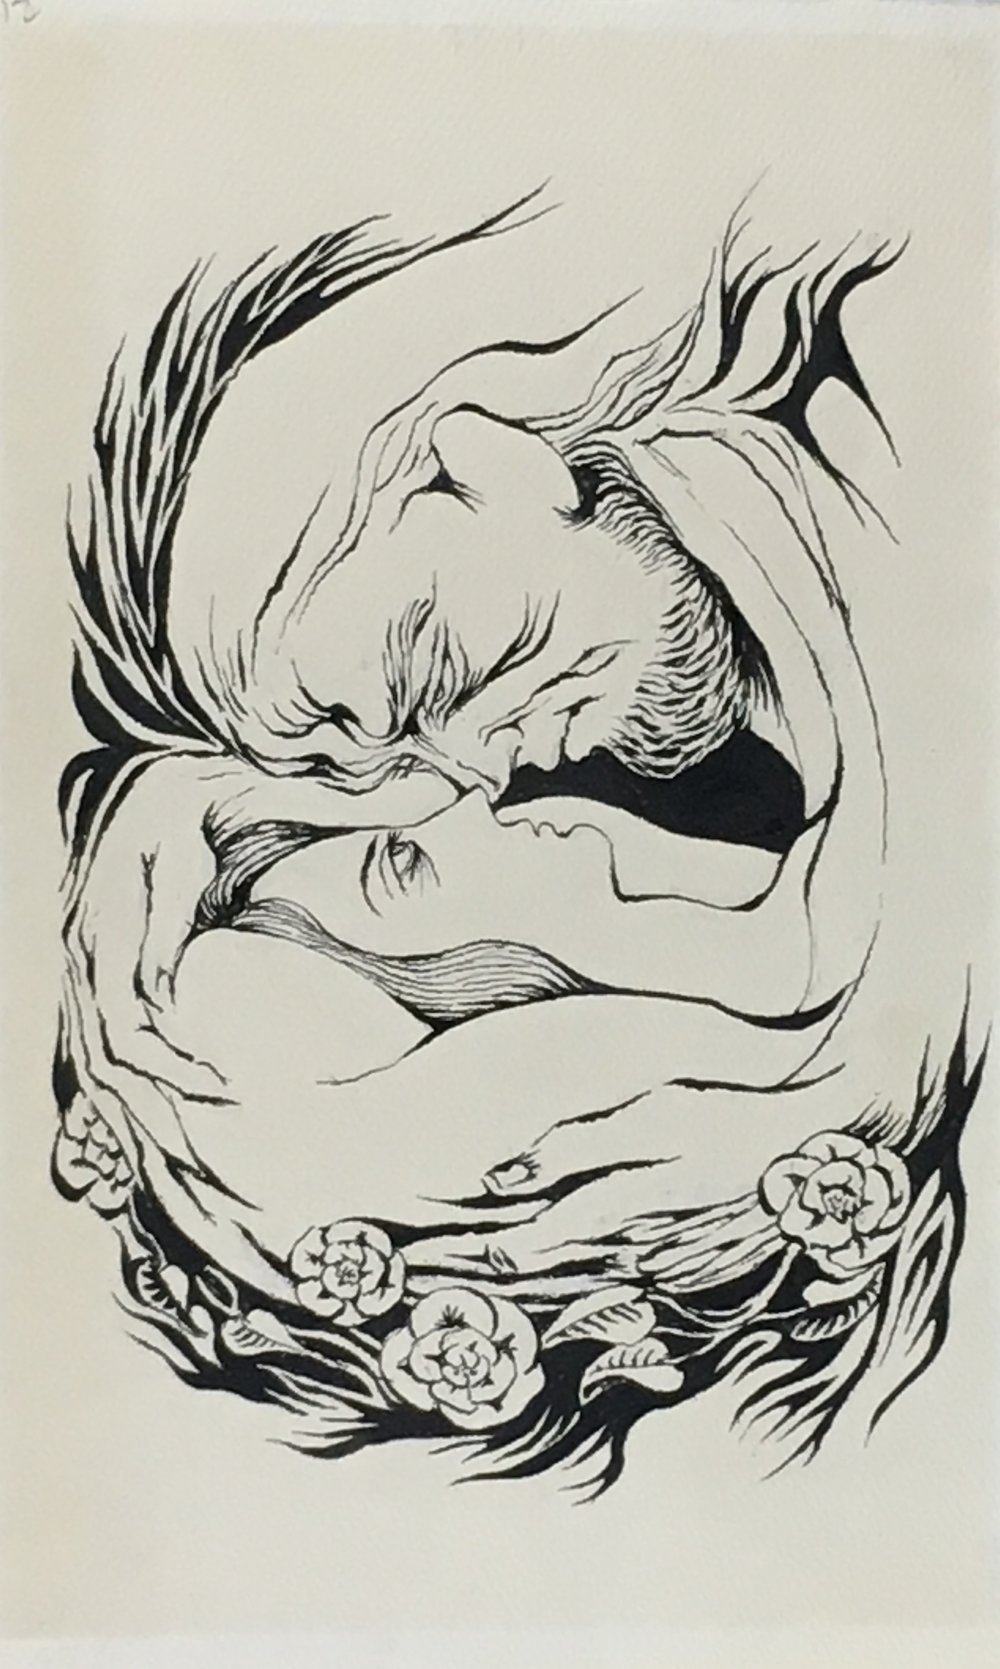 Briar Rose (Sleeping Beauty) , 1970-71 ink on paper, 16 3/4 x 10 1/4 inches